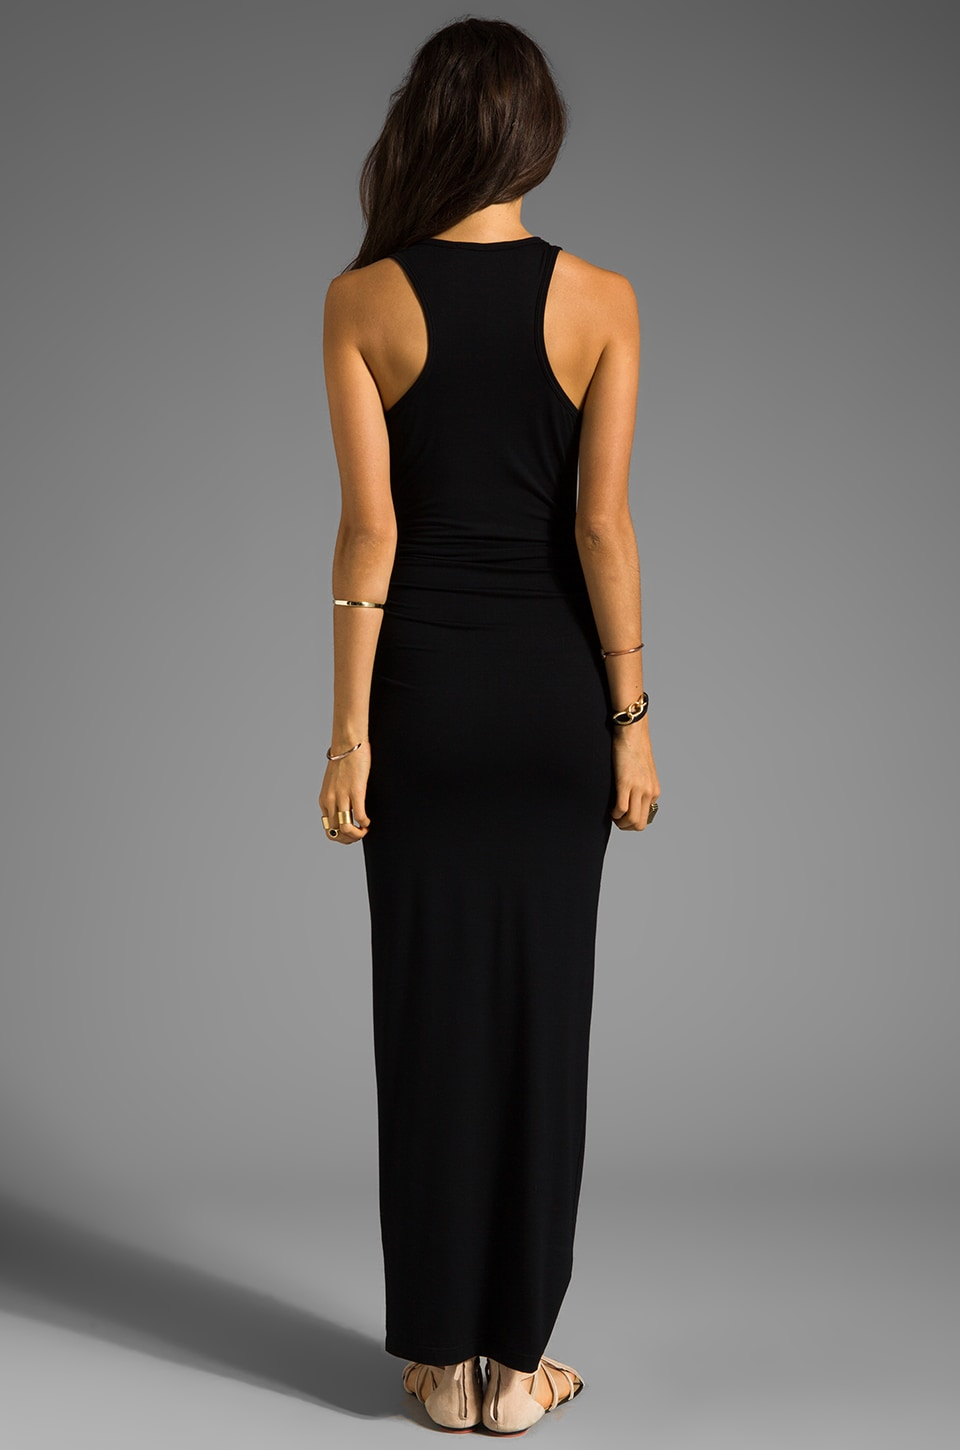 Kain Kinney Dress in Black